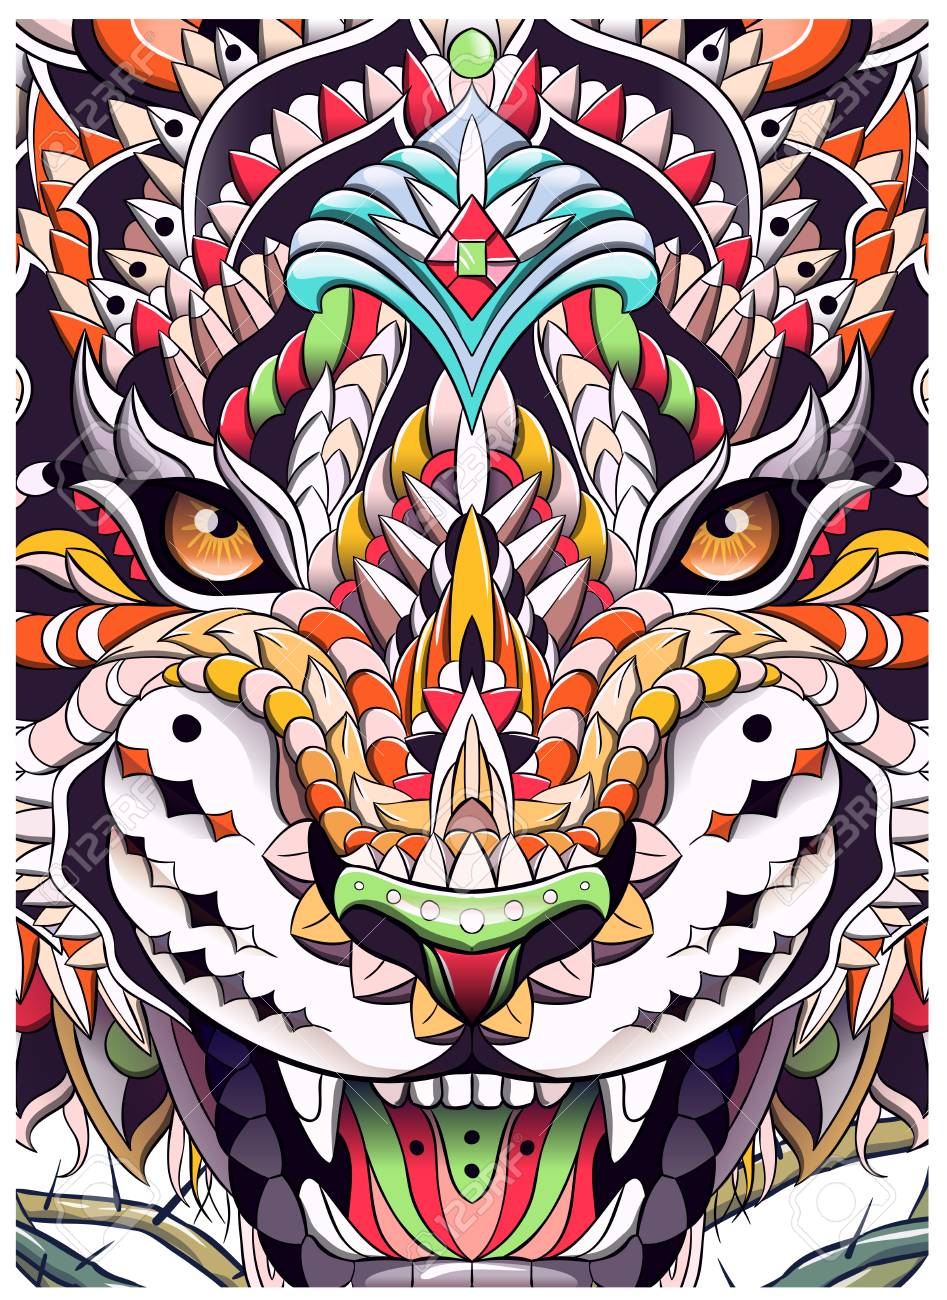 Patterned head of the roaring tiger. African, indian, totem, tattoo design. It may be used for design of a t-shirt, bag, postcard, a poster and so on. - 117031860